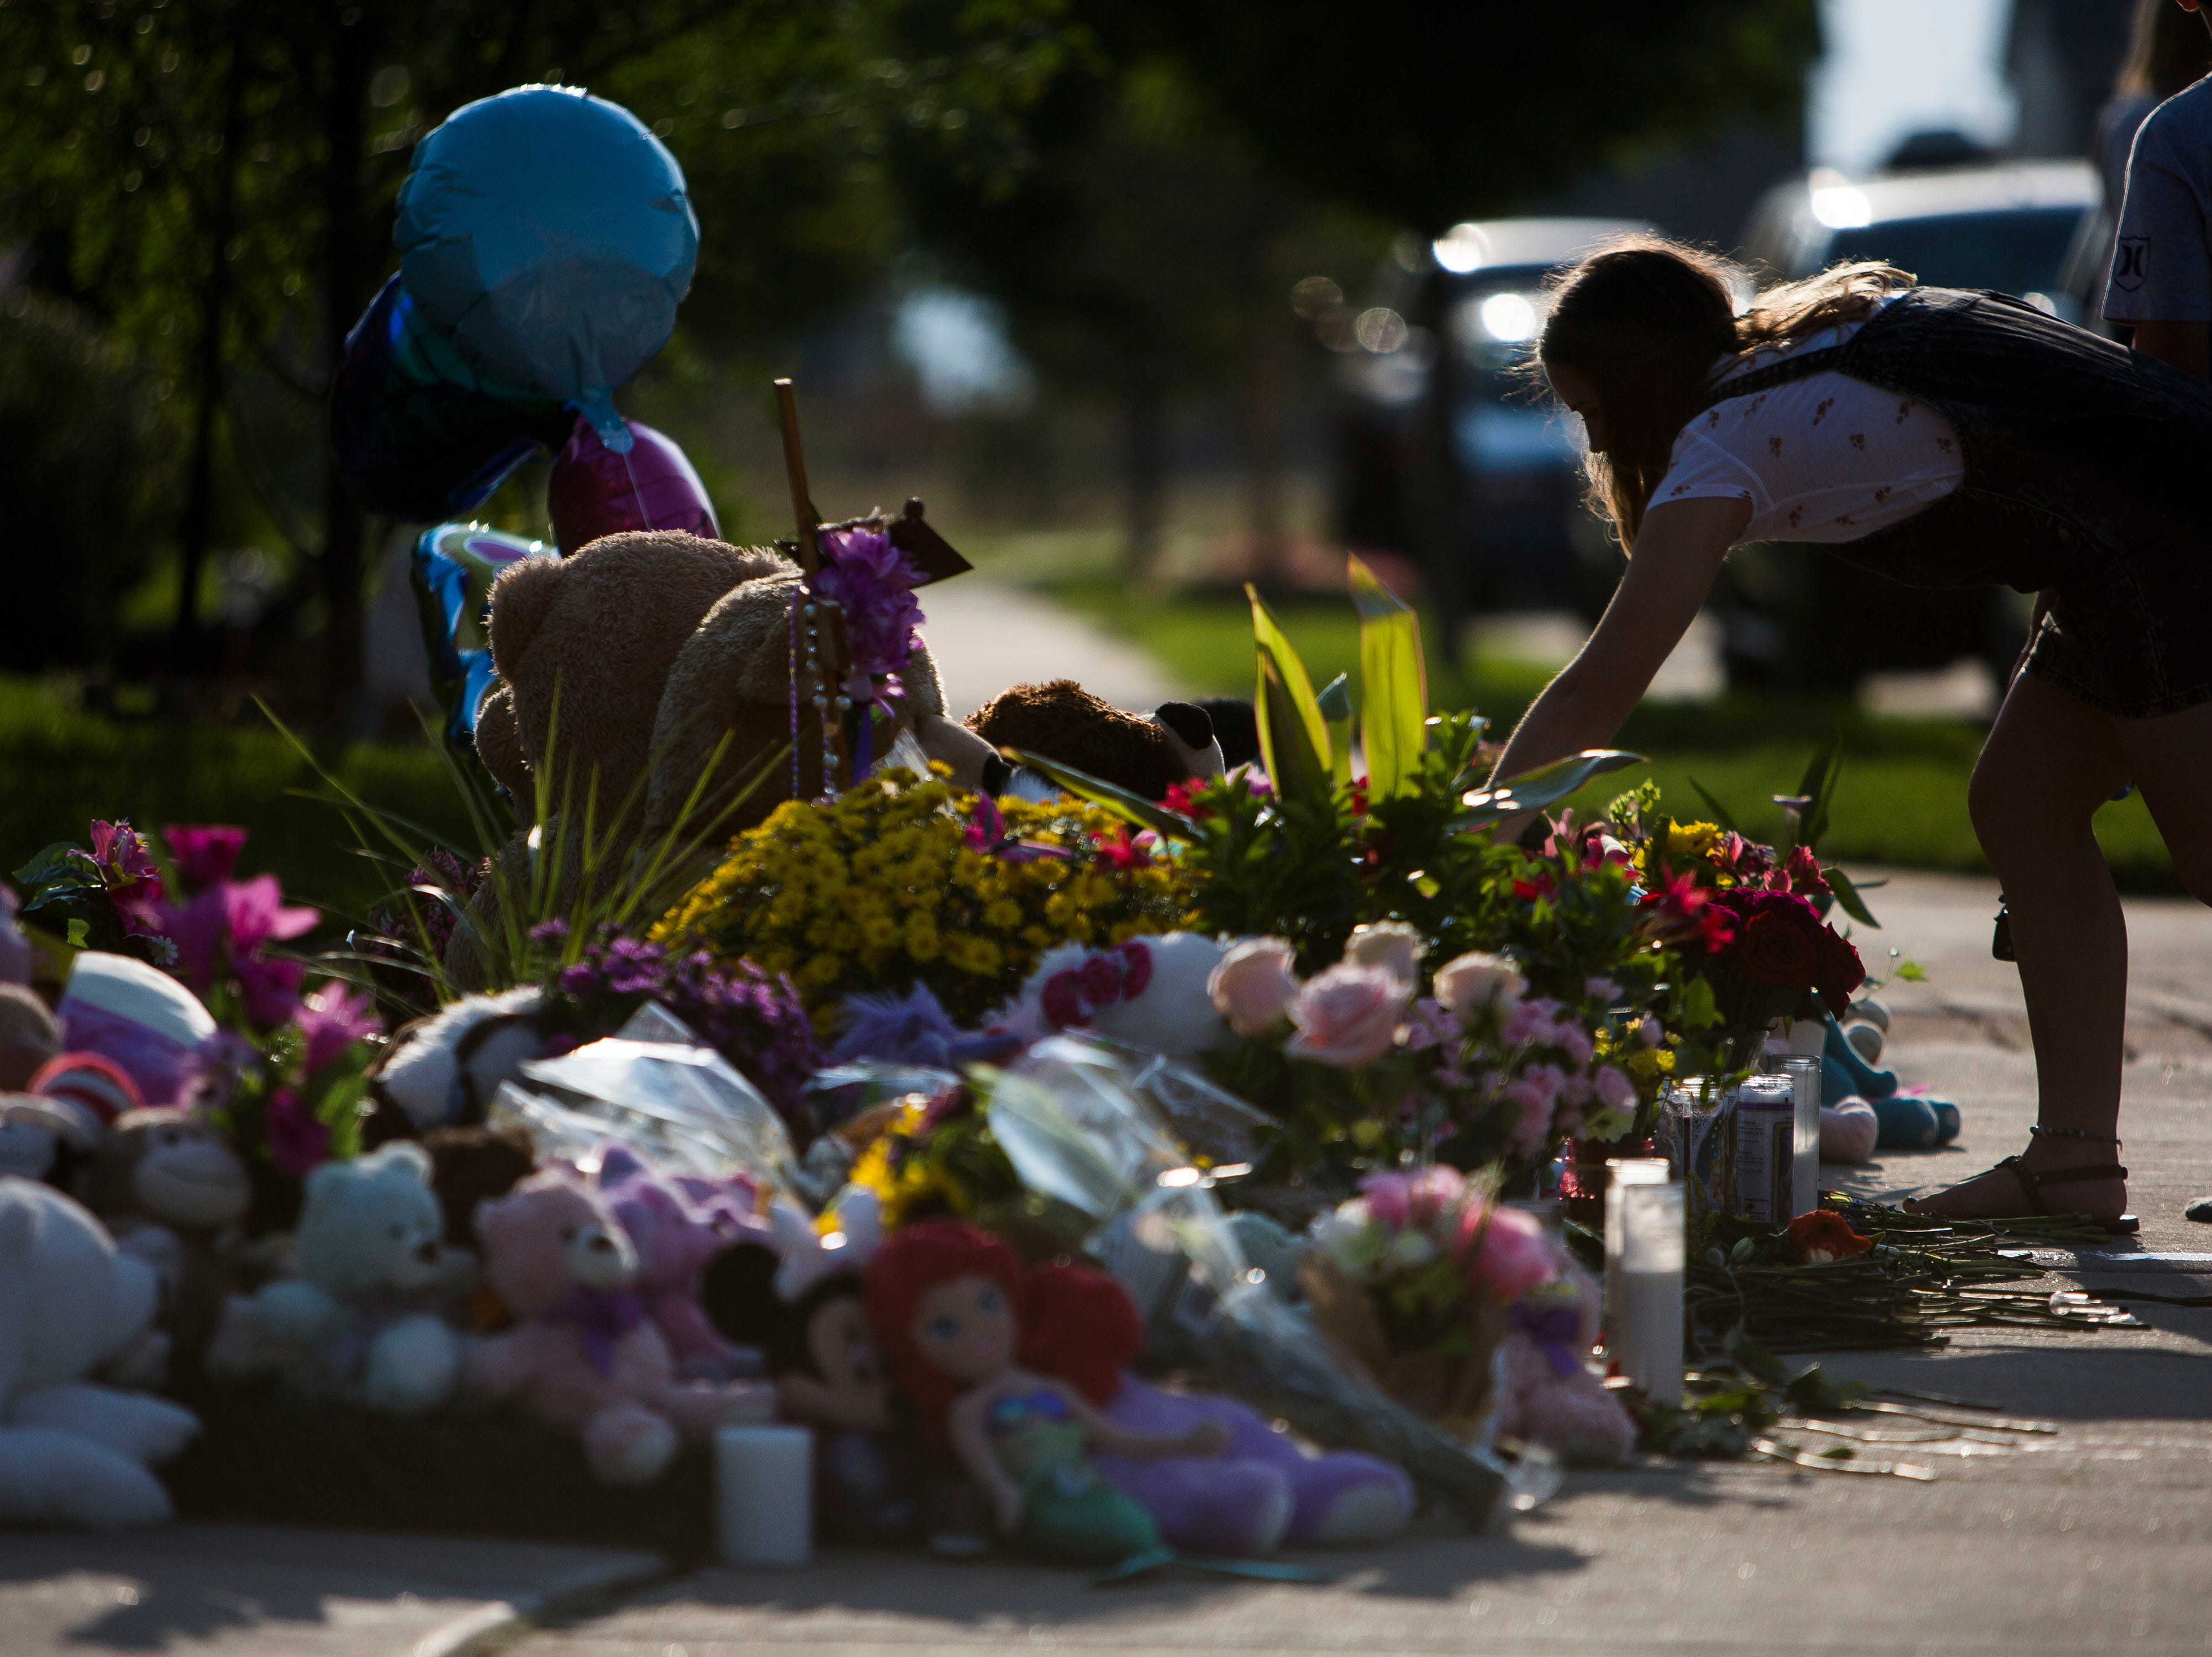 Frederick resident Elaina Dwinal, 16, leans over a memorial of flowers, stuffed animals and hand-written notes for the slain Shanann Watts and her two daughters, Bella, 4, and Celeste, 3, in front of the Watts' family home on Friday, Aug. 17, 2018, in Frederick, Colo.